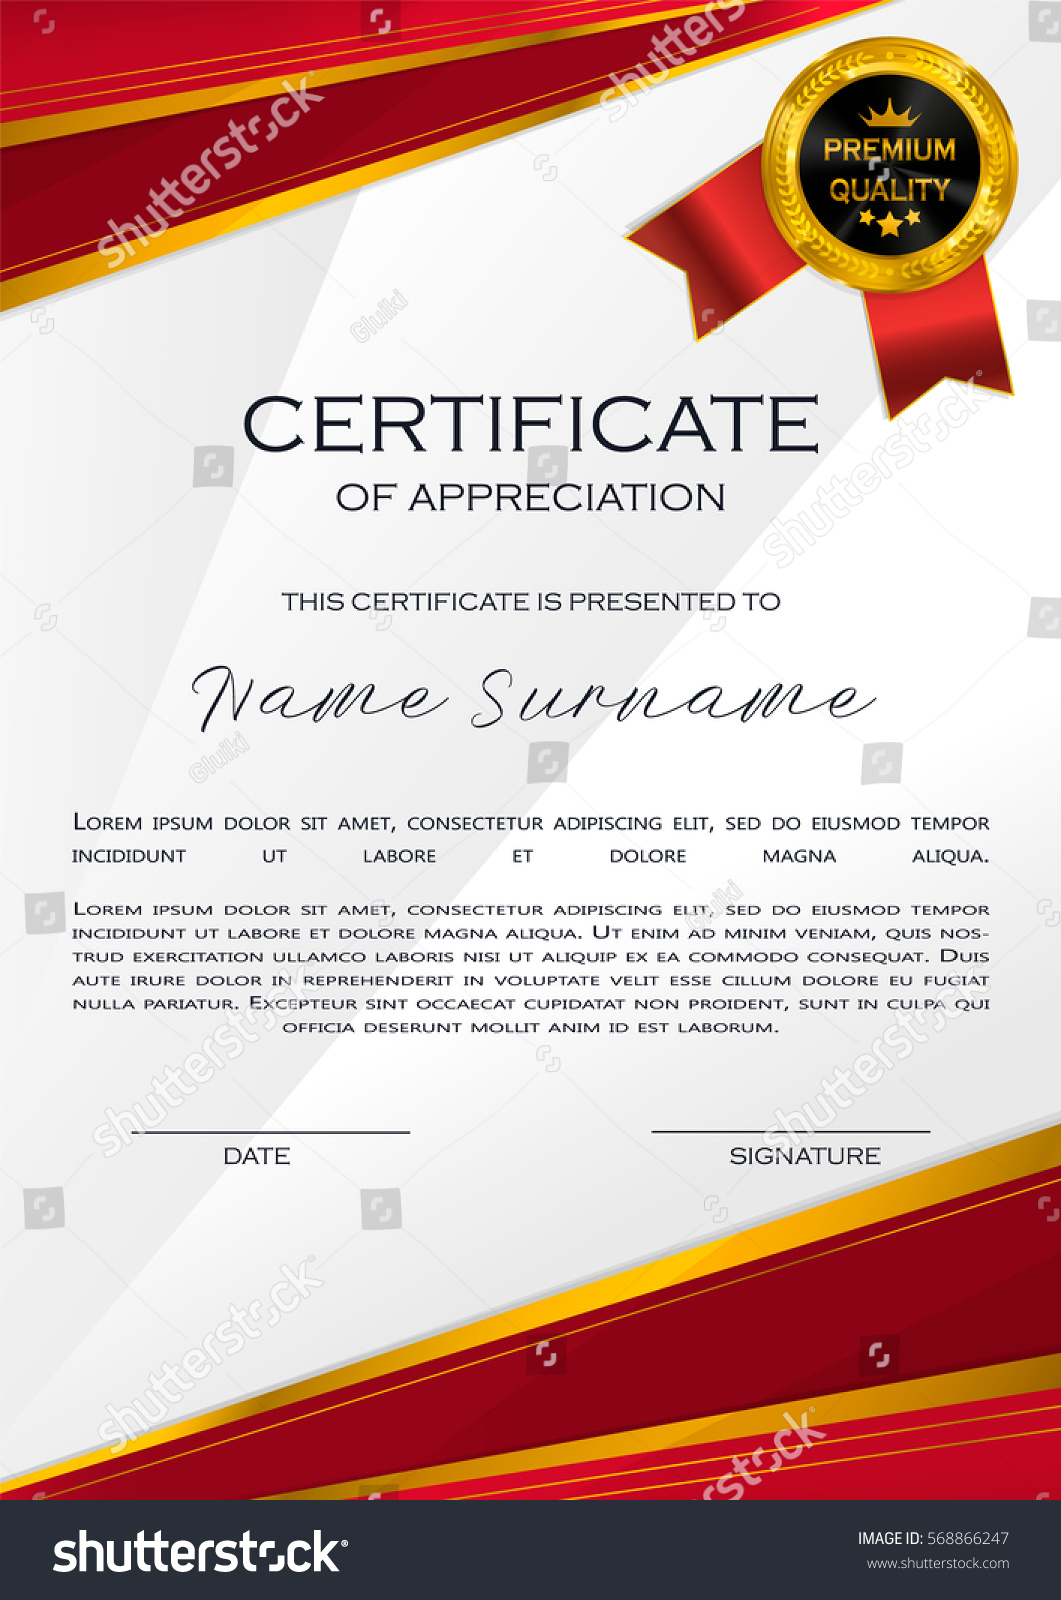 Certificate Vectors Photos and PSD files  Free Download